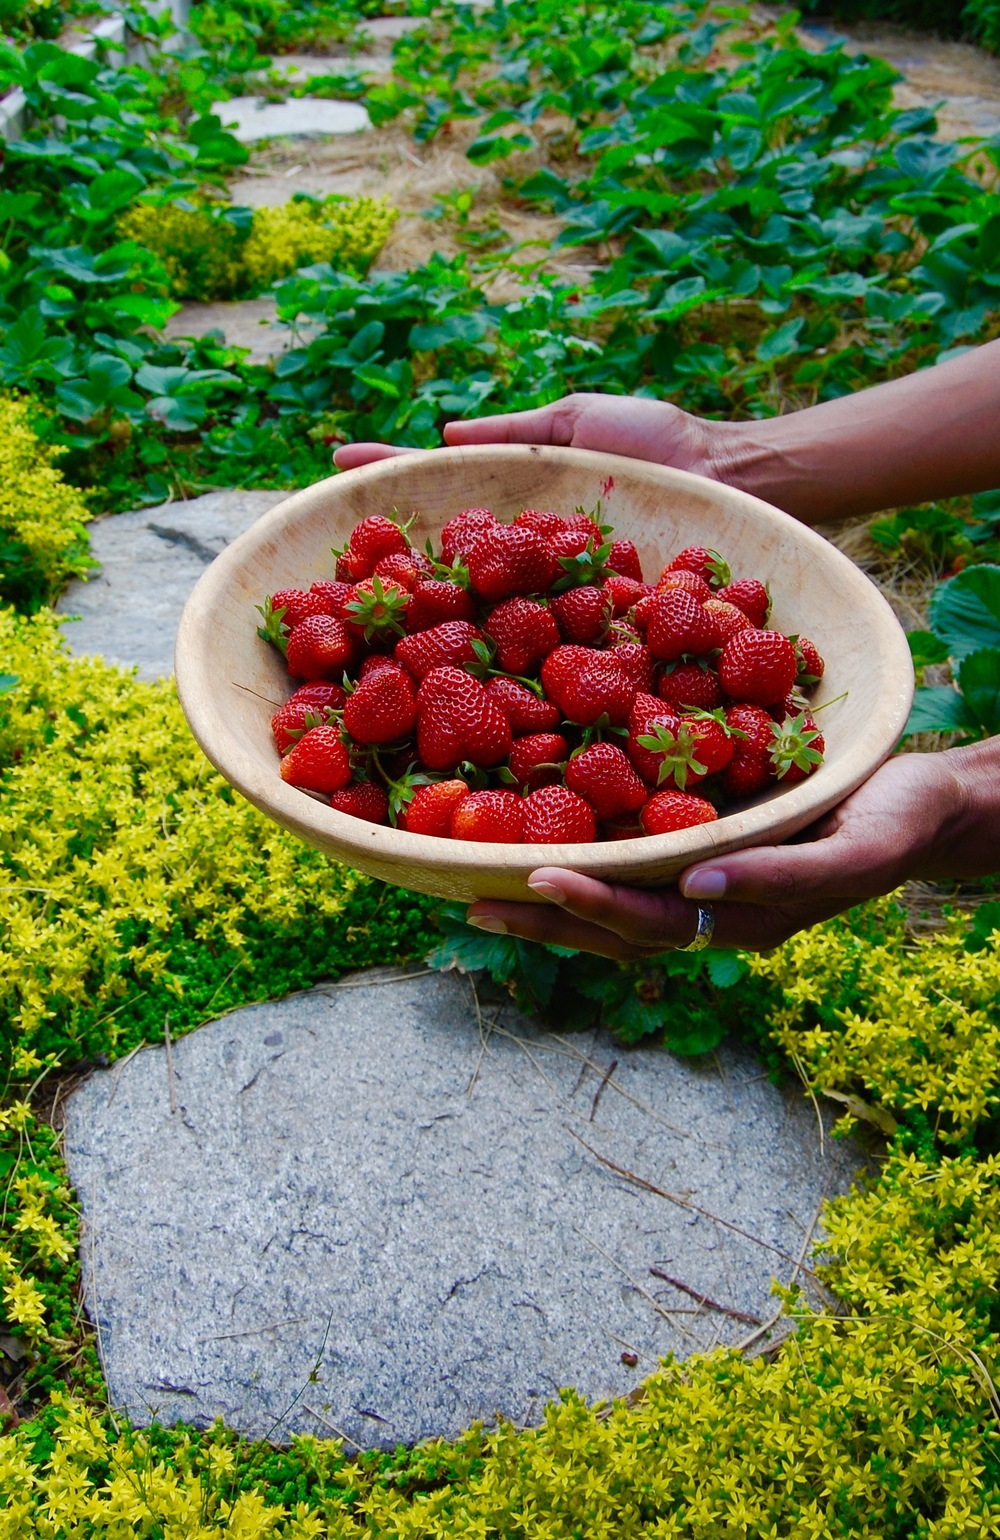 Stepping Stones and Strawberries